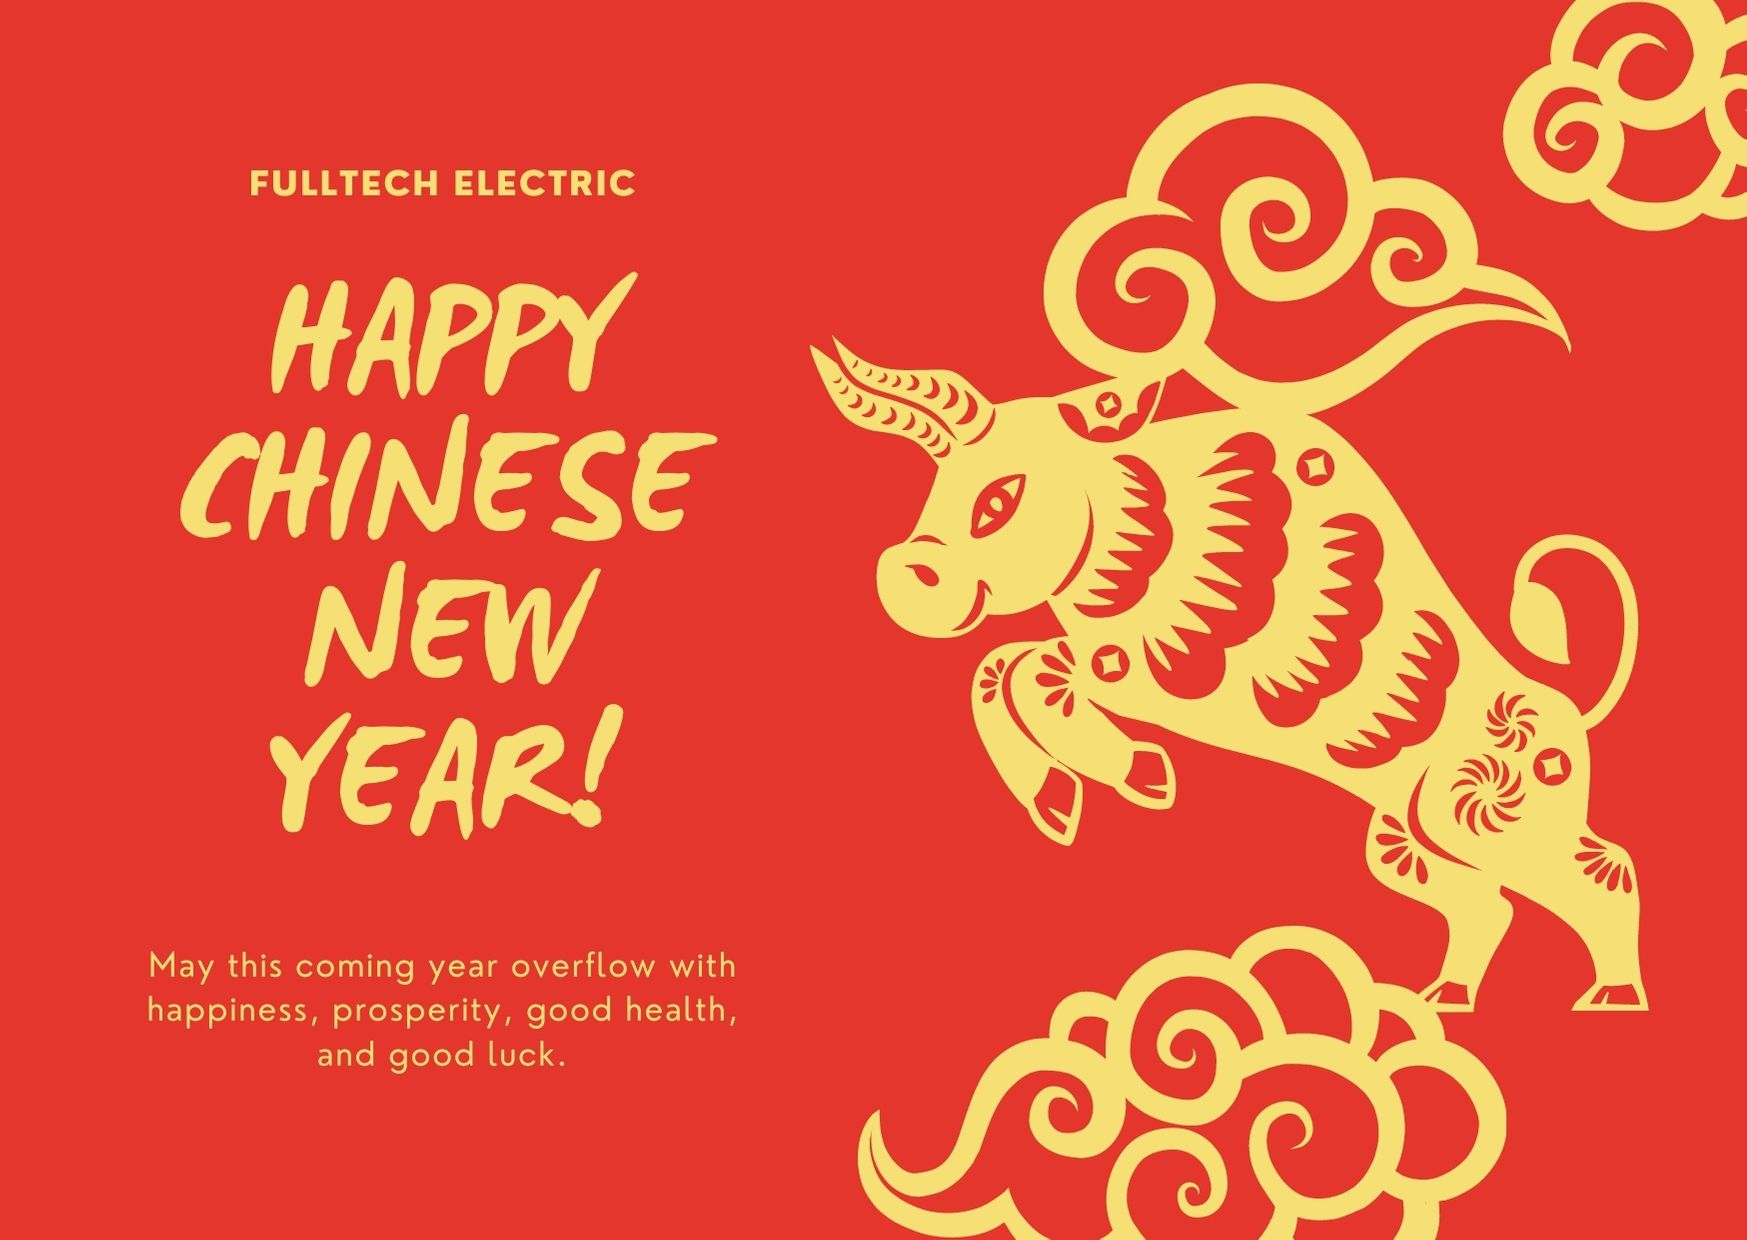 Chinese New Year Holidays (Feb. 10th - Feb. 16th, 2021) - Fulltech Electric